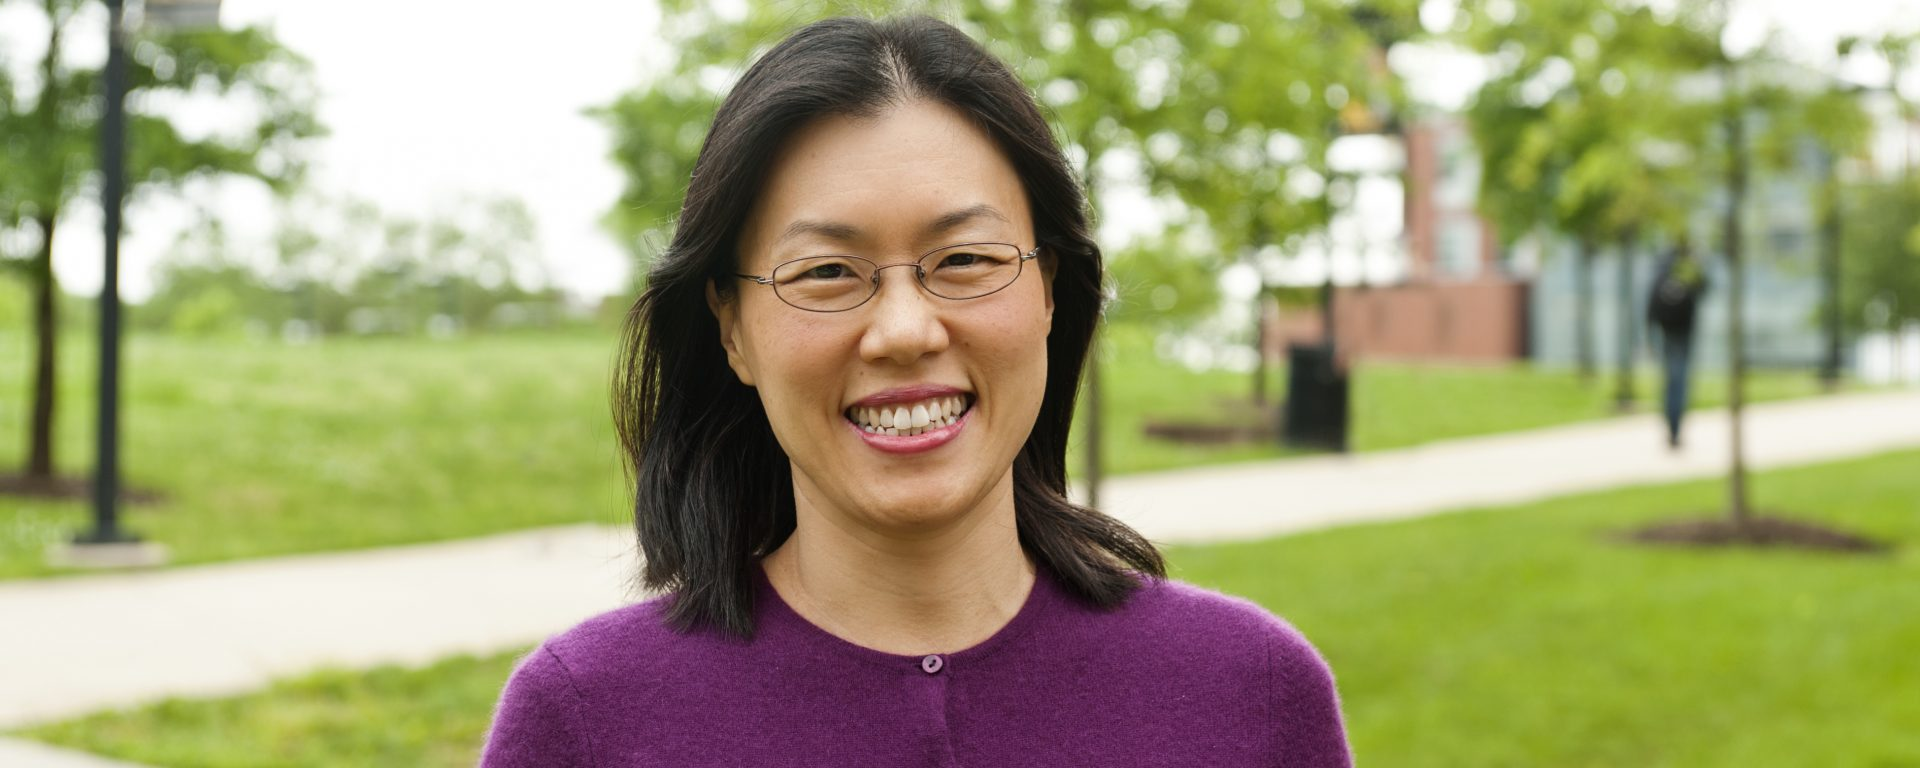 Sarah Shin named American Council on Education Fellow for 2017-18